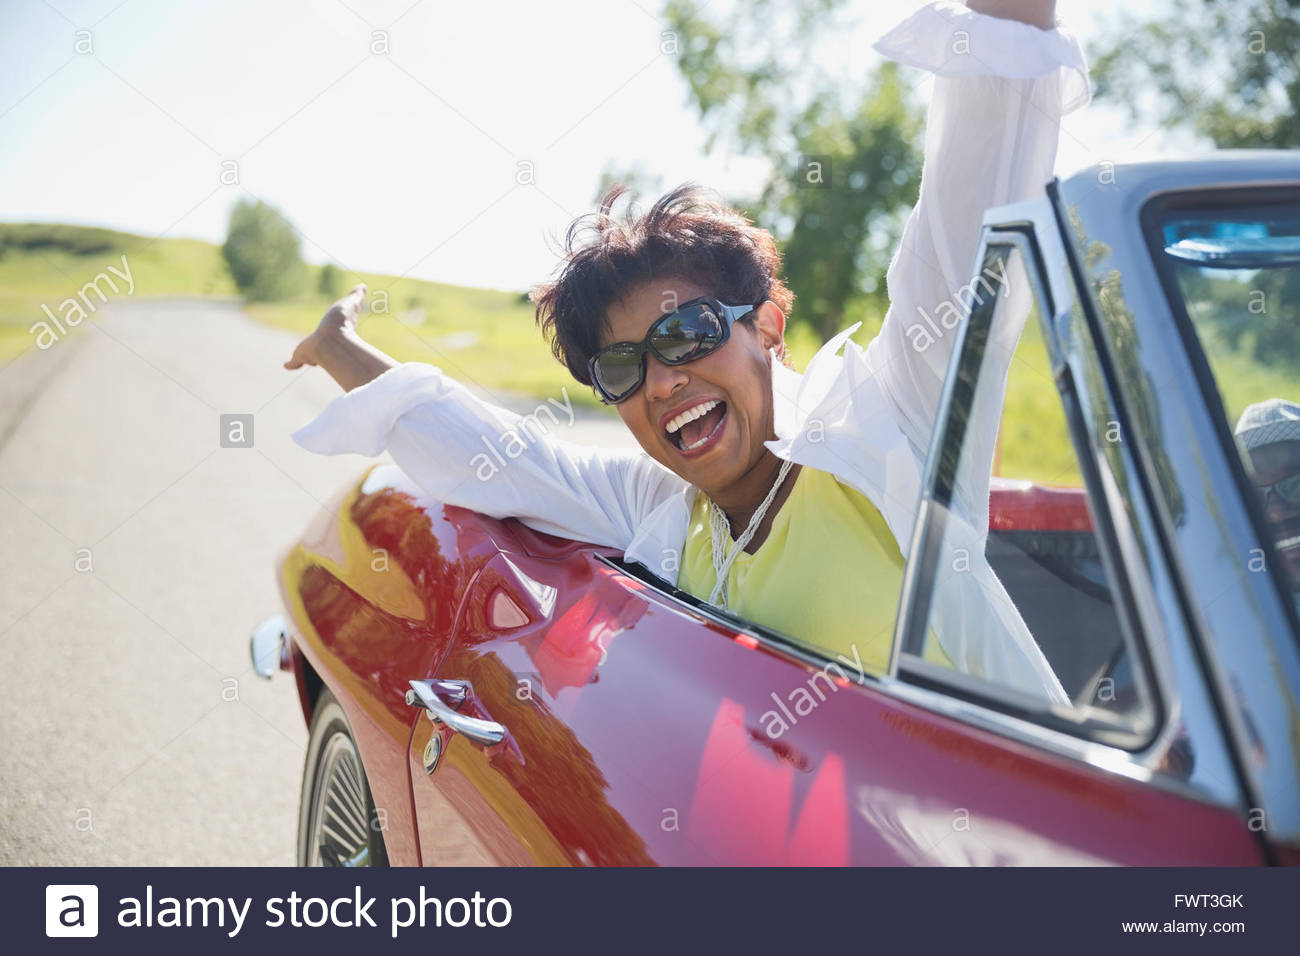 Portrait of excited middle-aged woman in red convertible - Stock Image